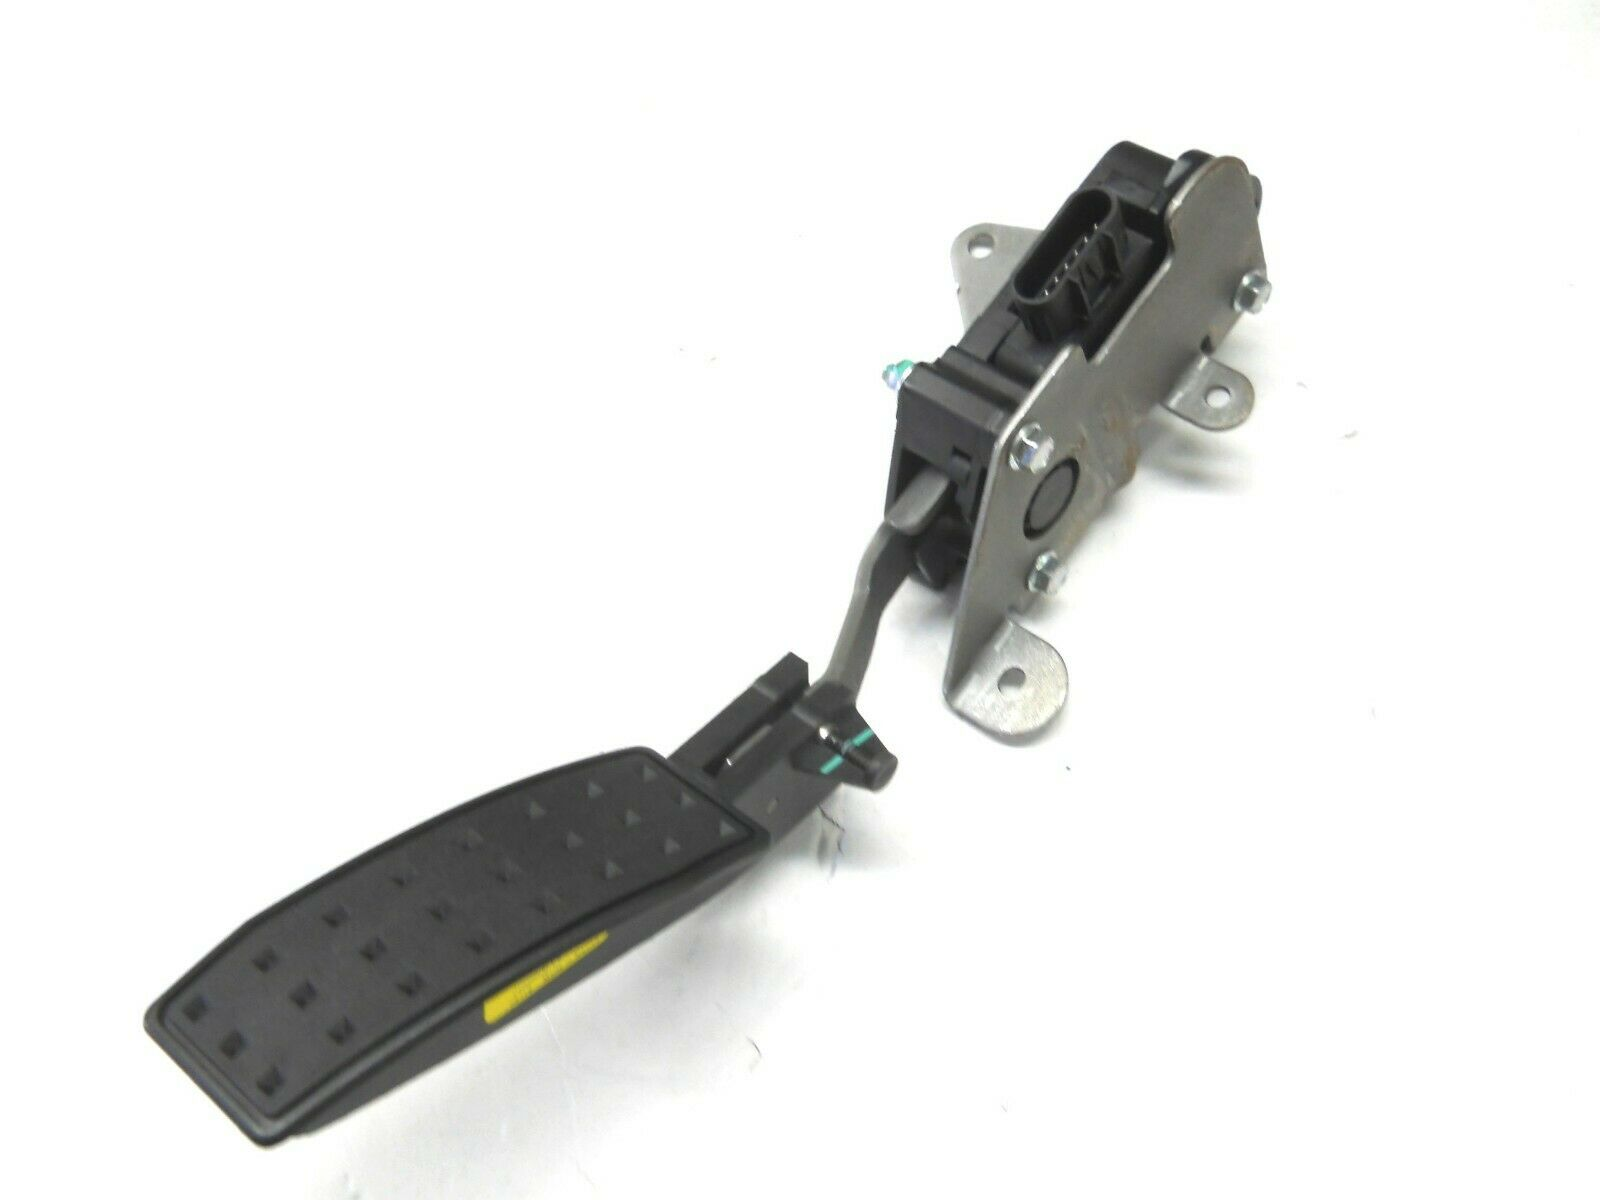 NEW GM PART #10379038 FLY BY WIRE ACCELERATOR PEDAL 10379038